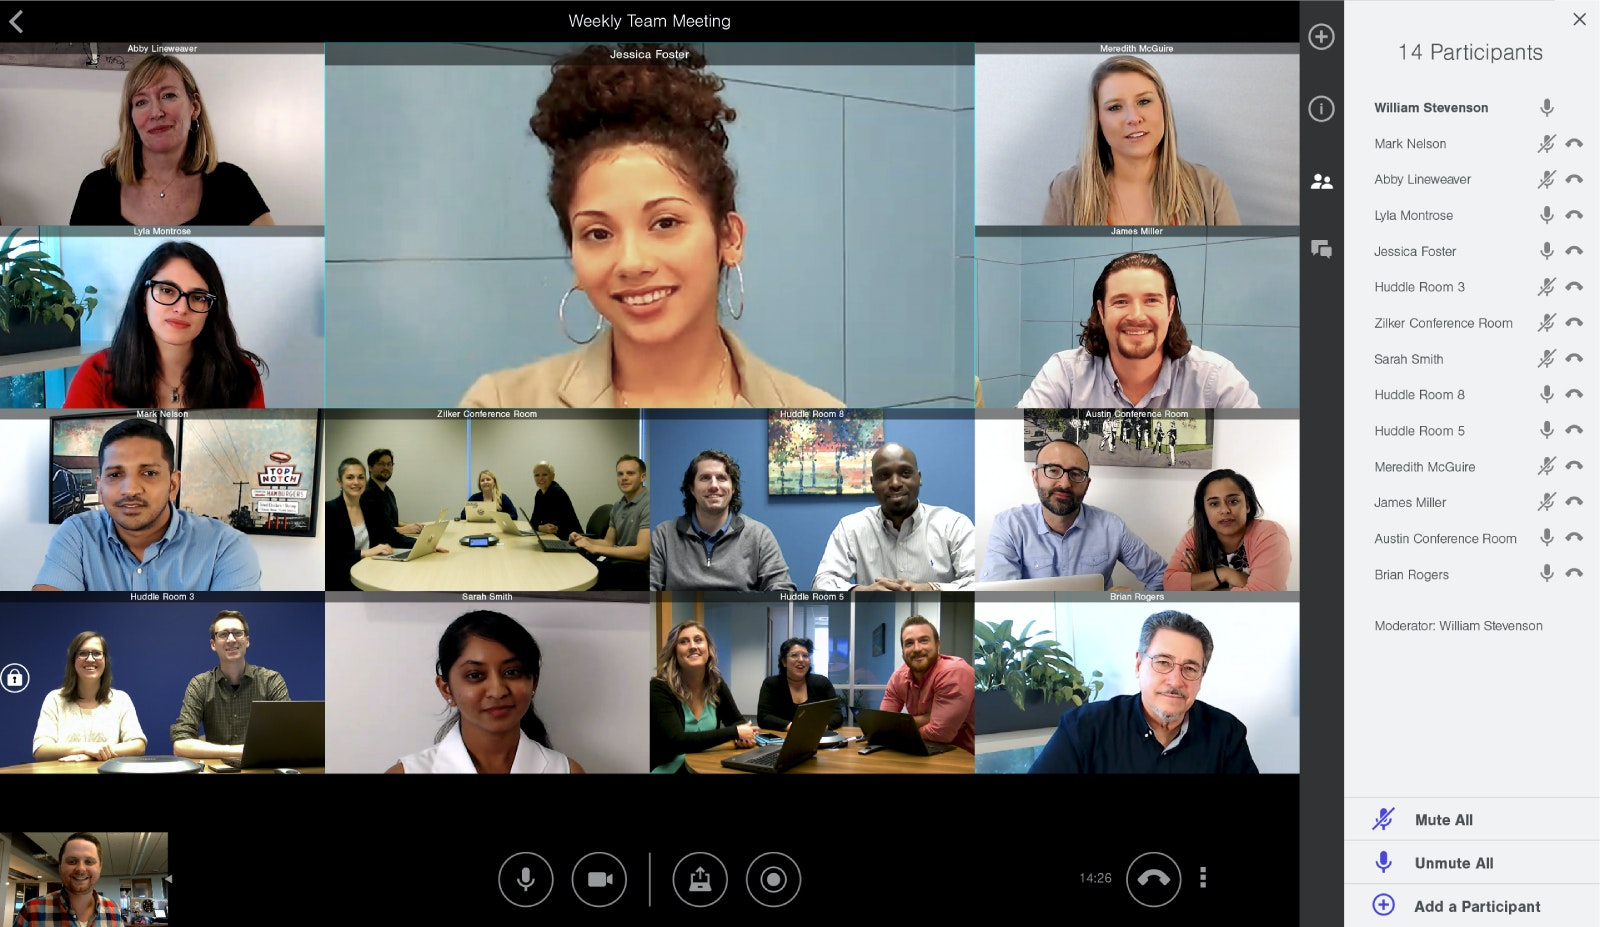 Group video conference